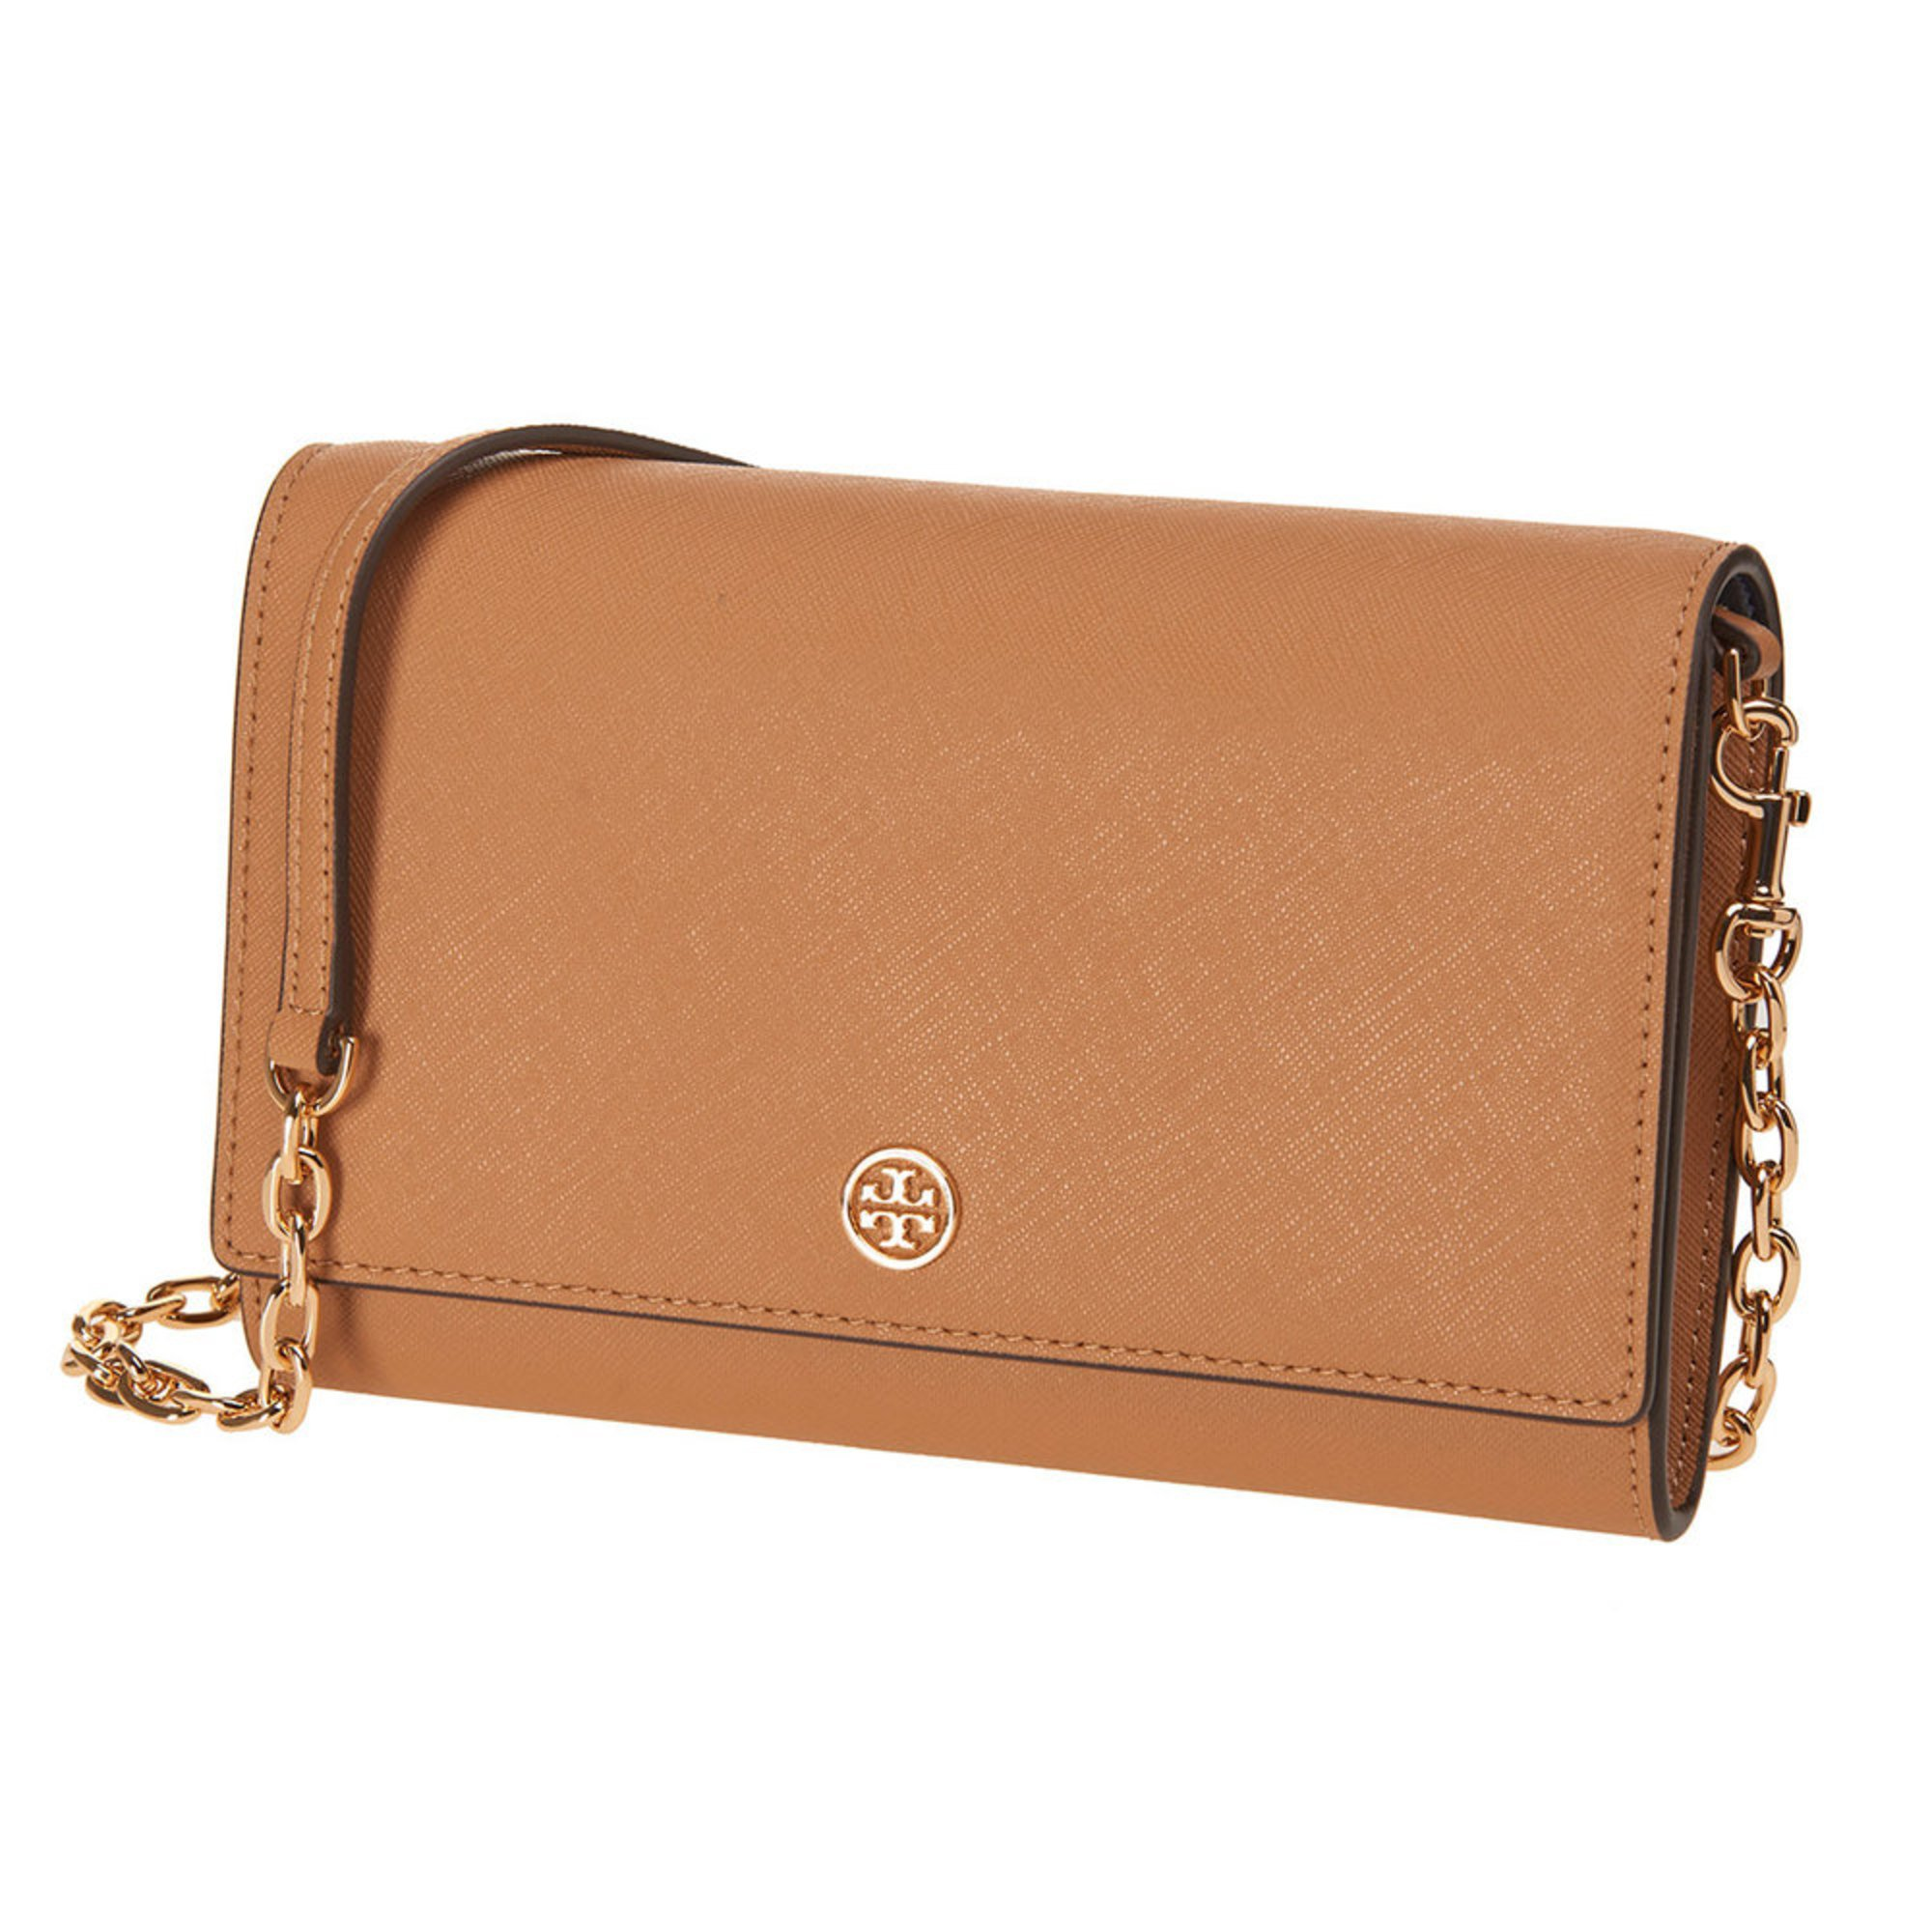 9d2a388abf4 Tory Burch Robinson Chain Wallet Black royal Navy